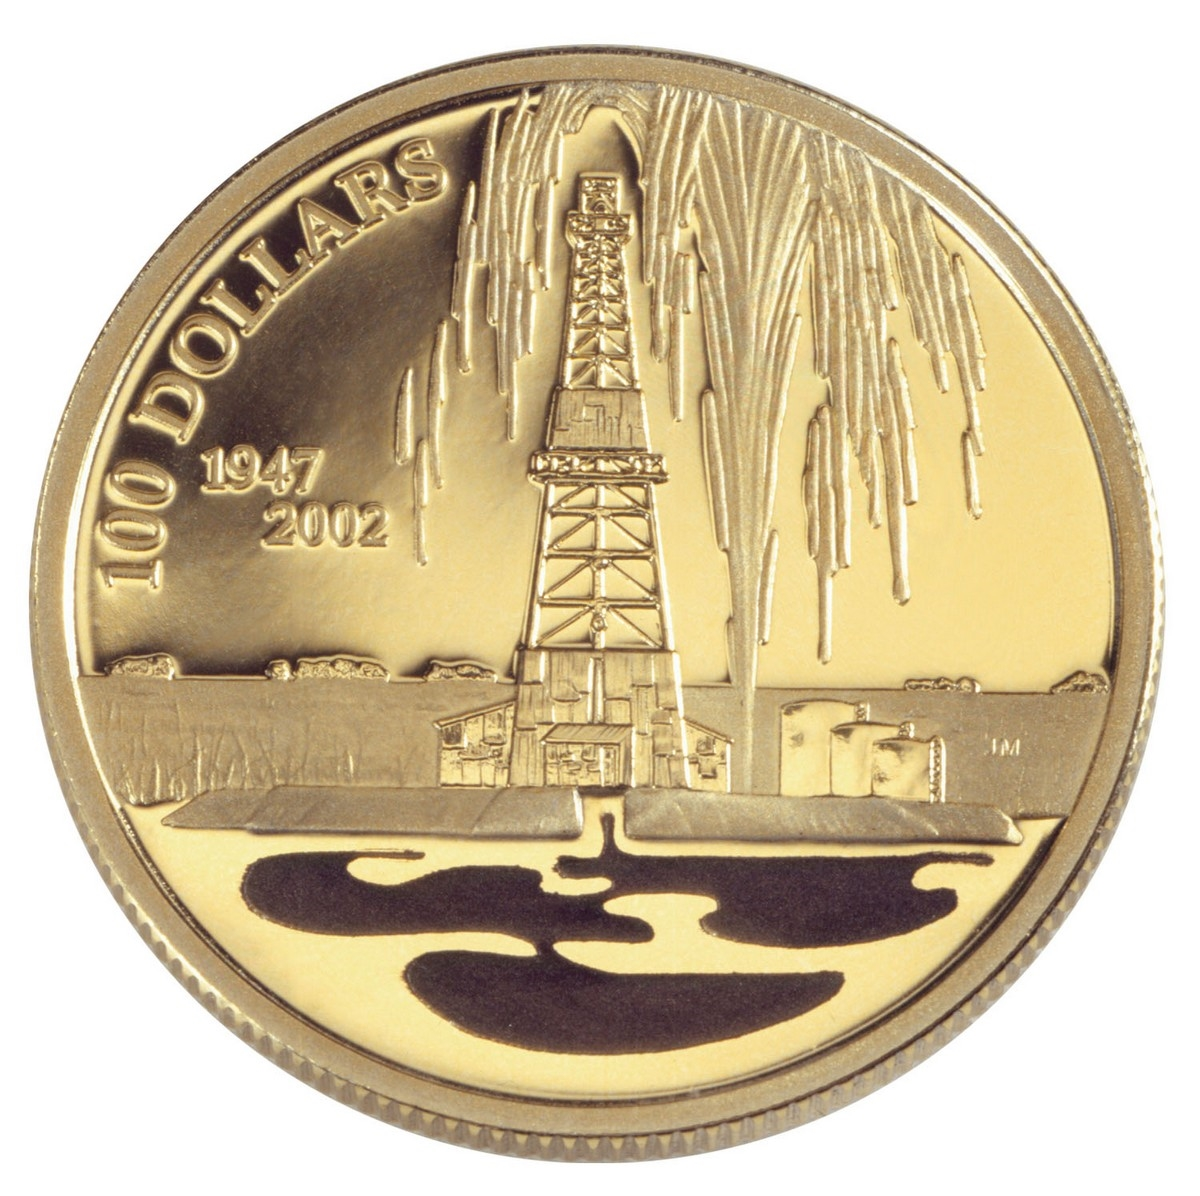 2002 $100 Canada's Oil Industry - Gold & Silver Coin